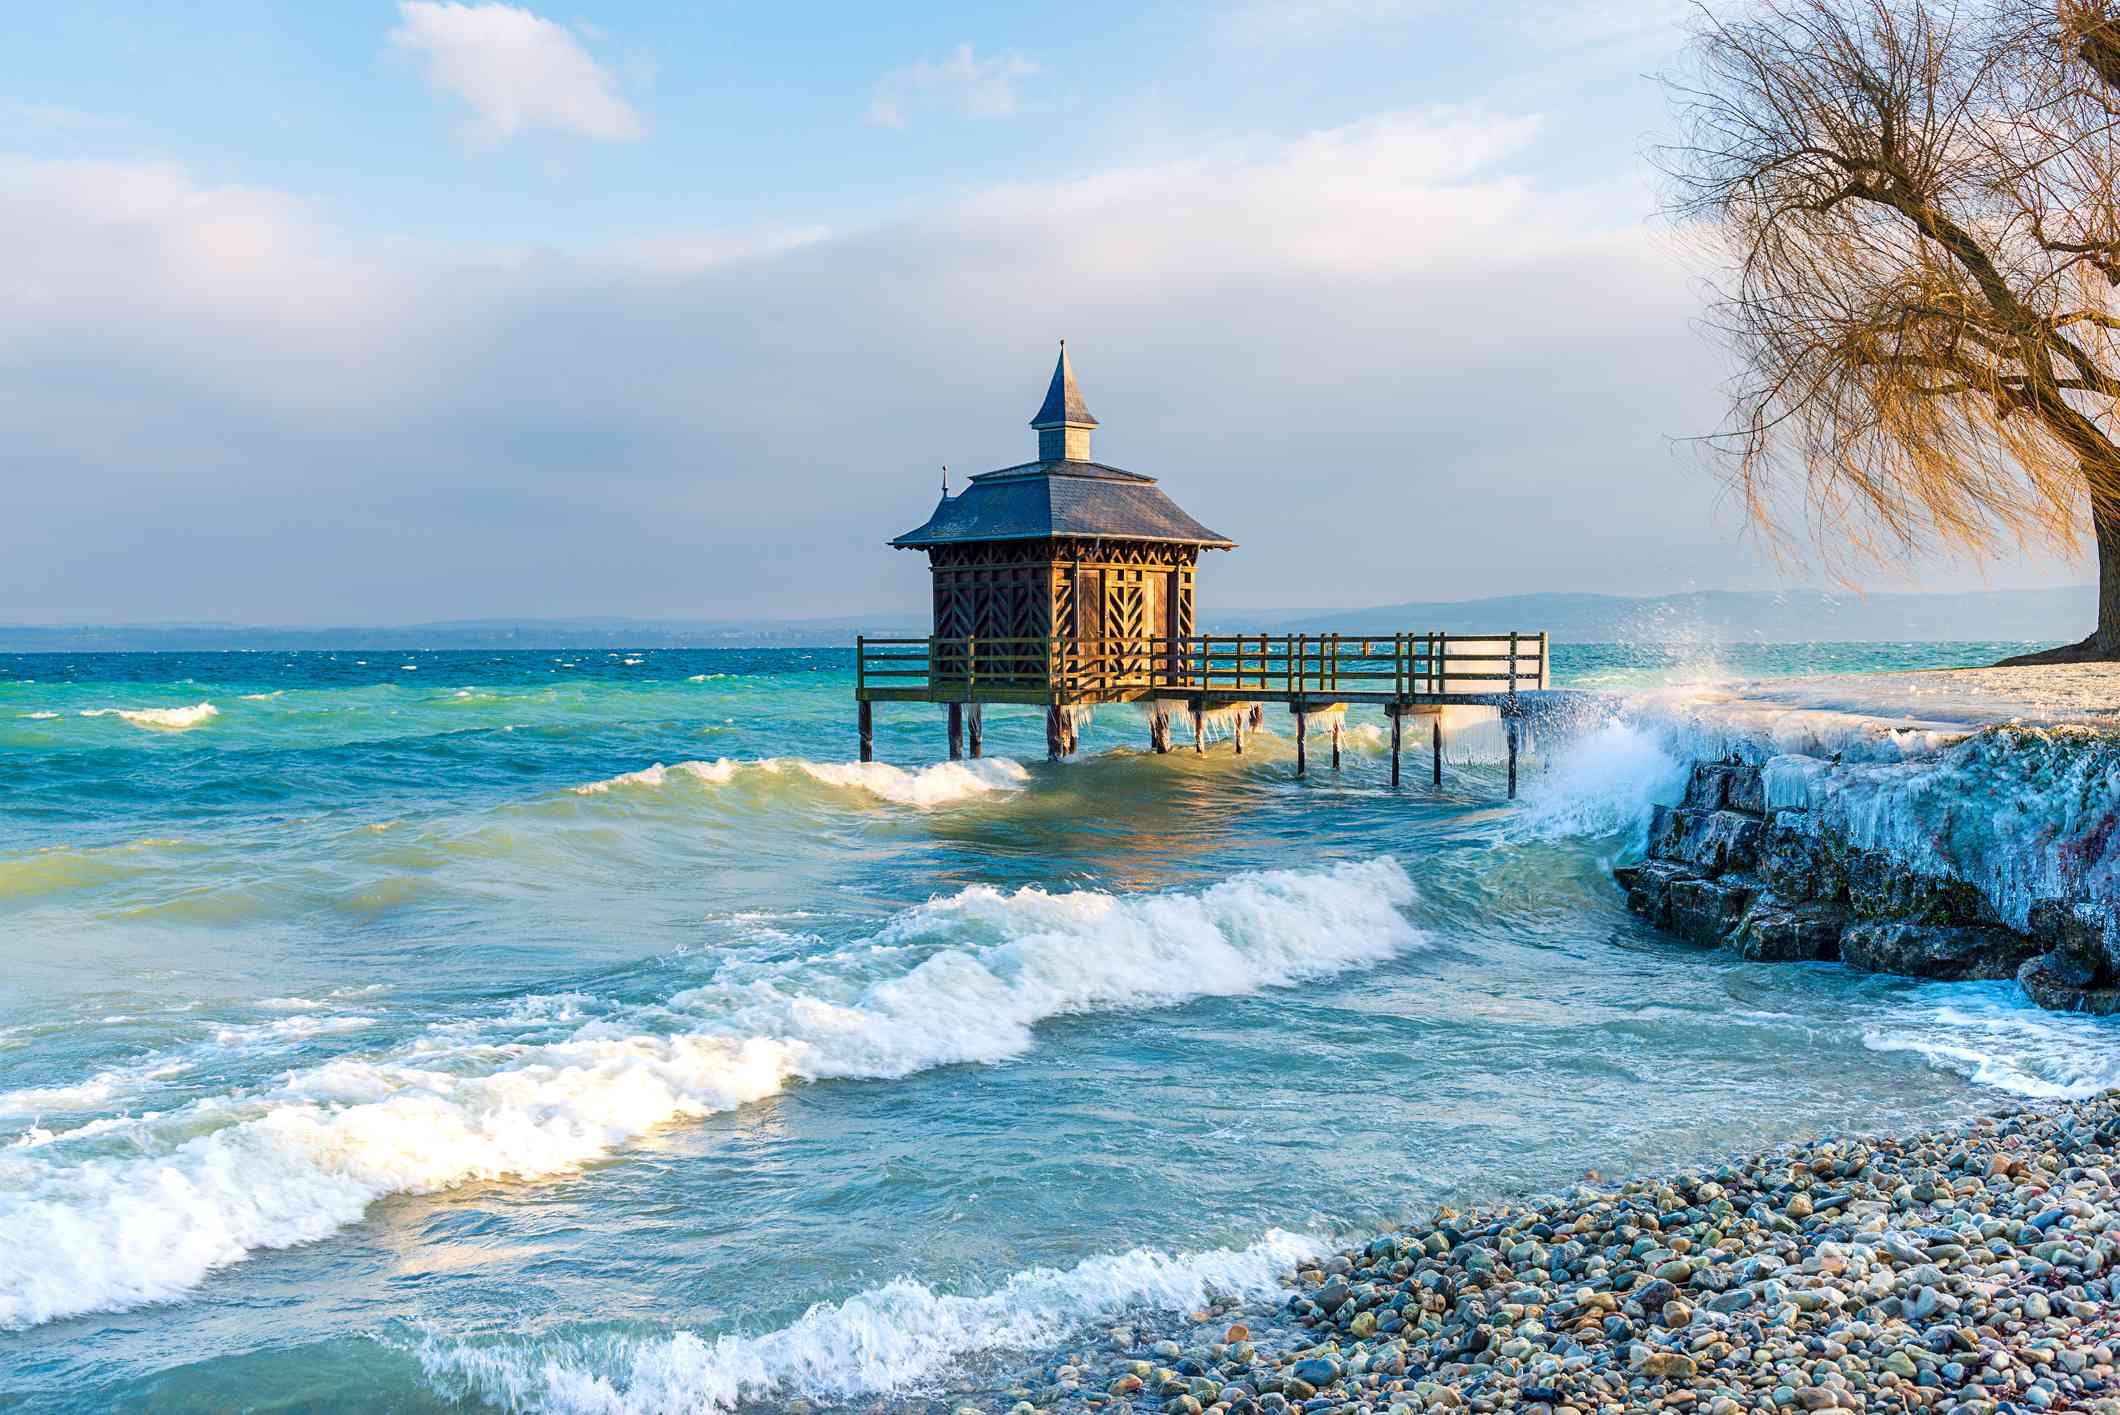 waves crashing against the rock shore of Lake Neuchatel in winter. There is short boardwalk with a small building at the end